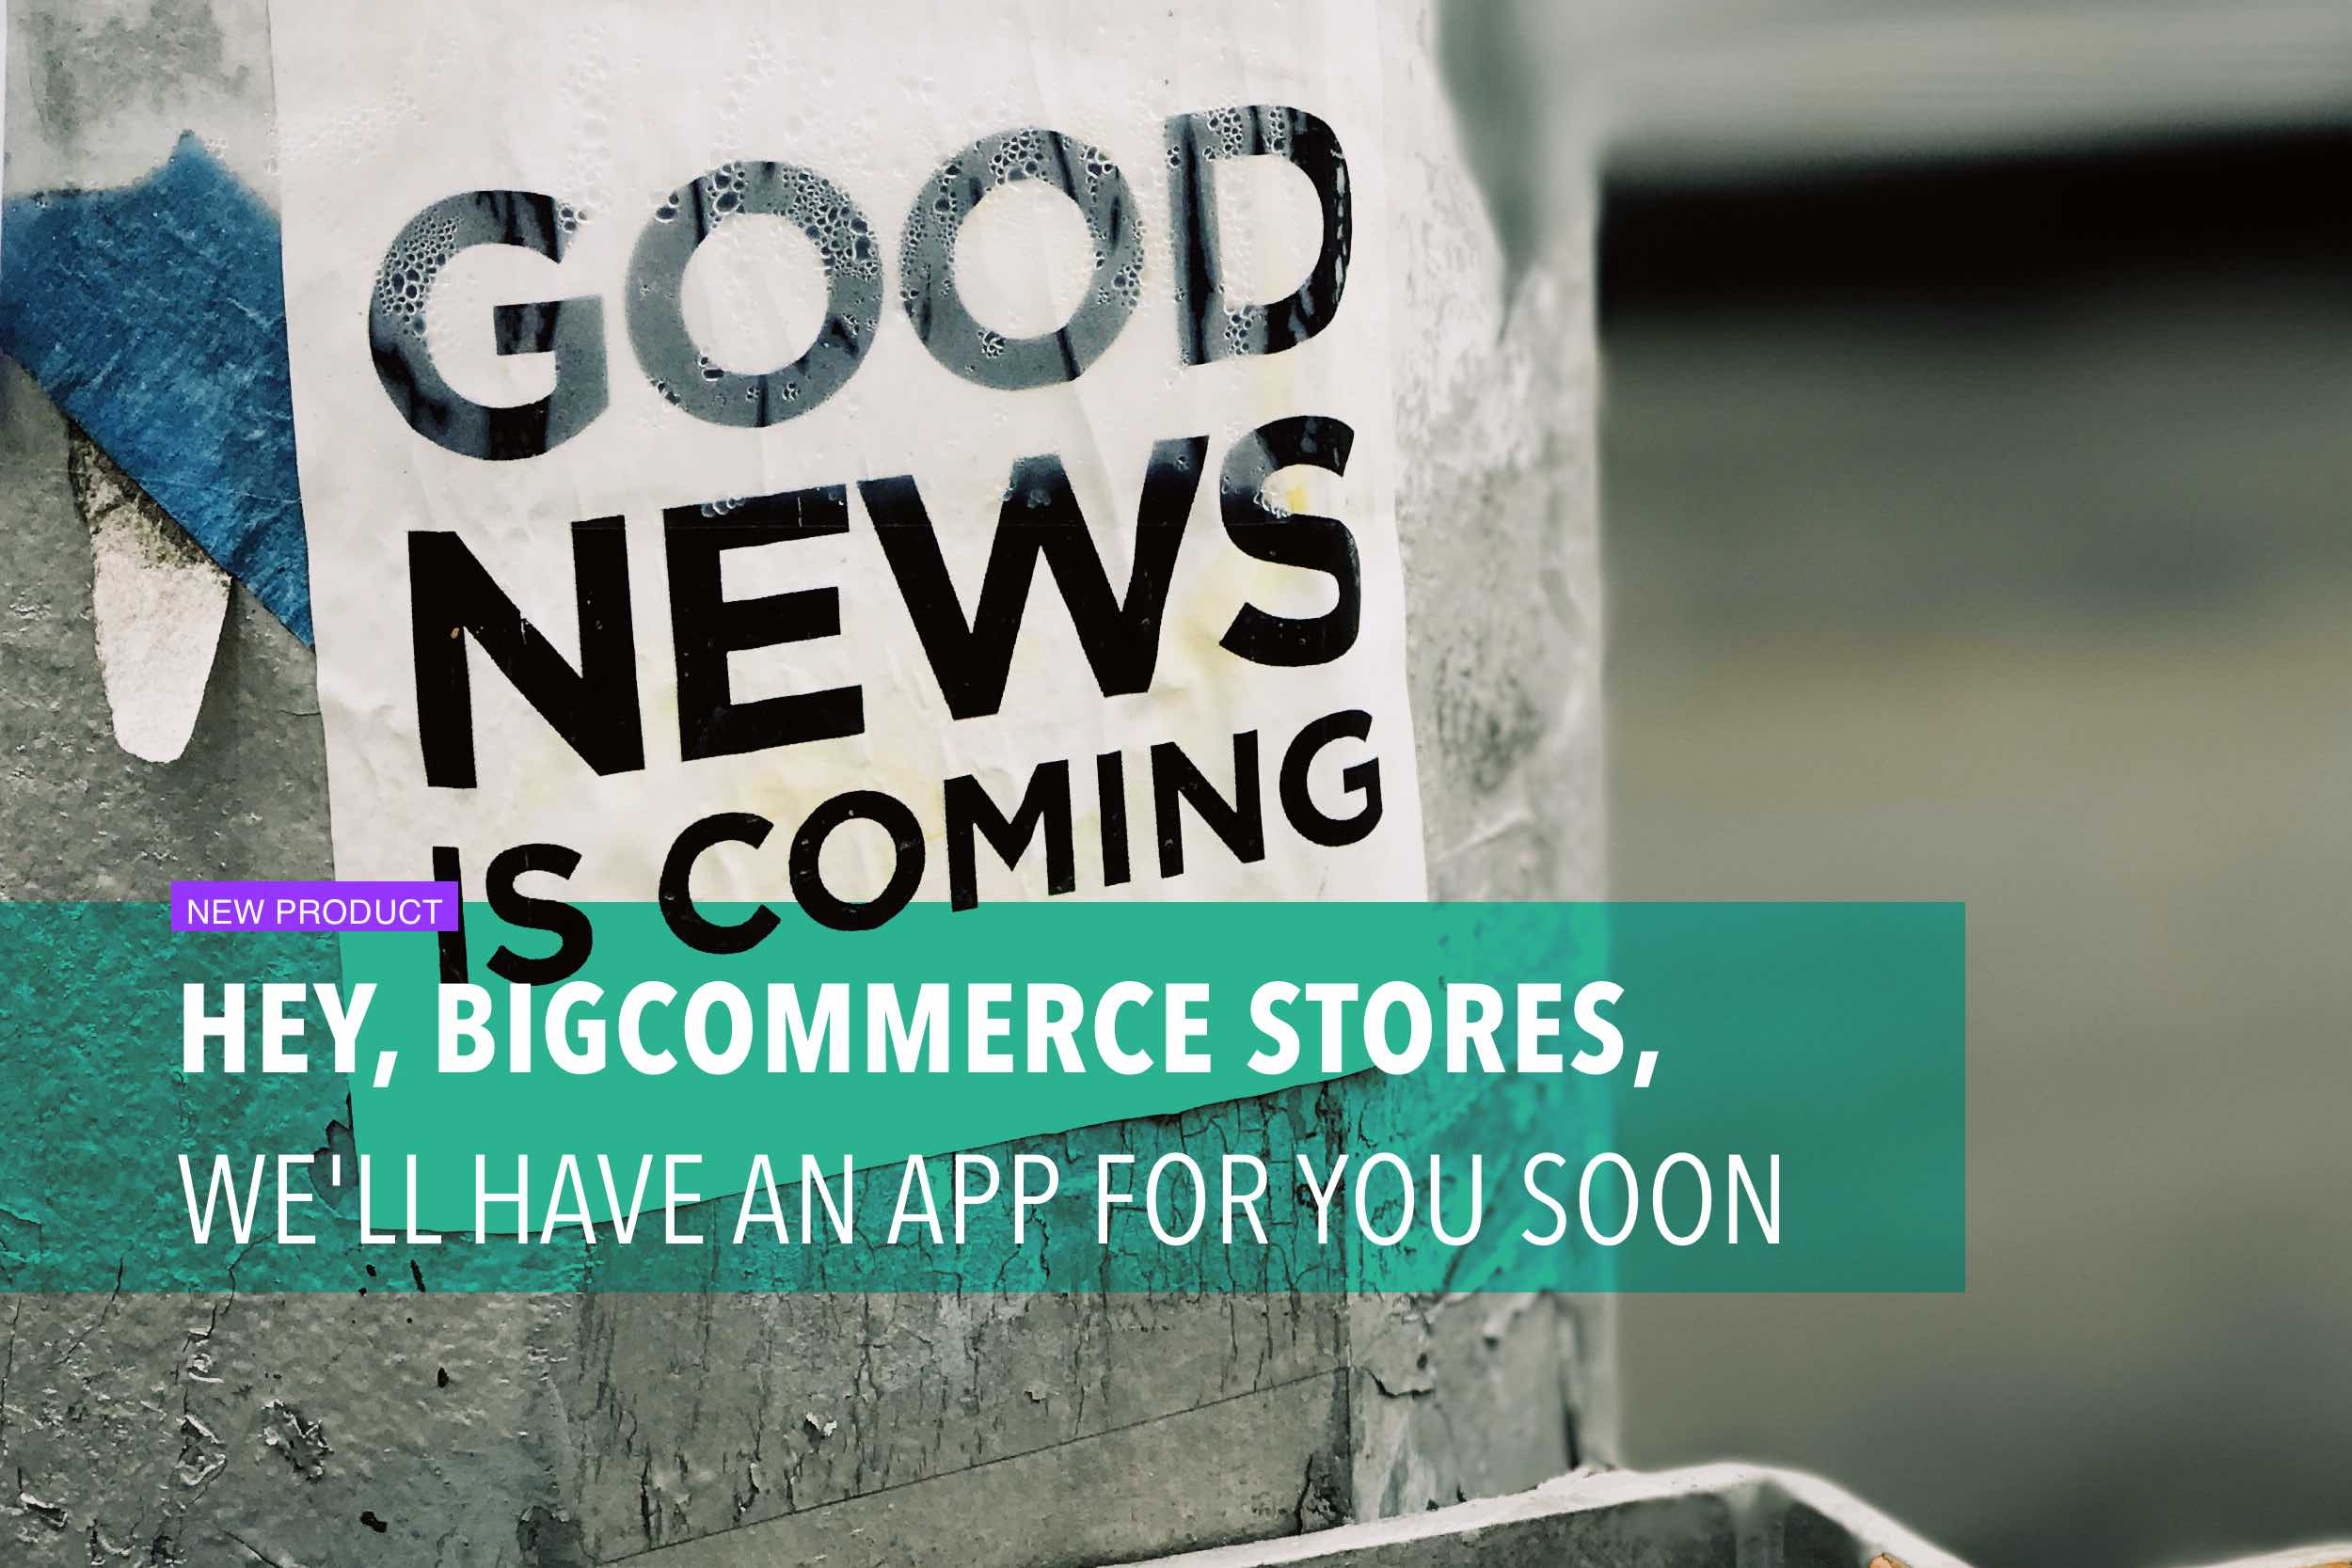 Hey, BigCommerce stores, we'll have an app for you soon